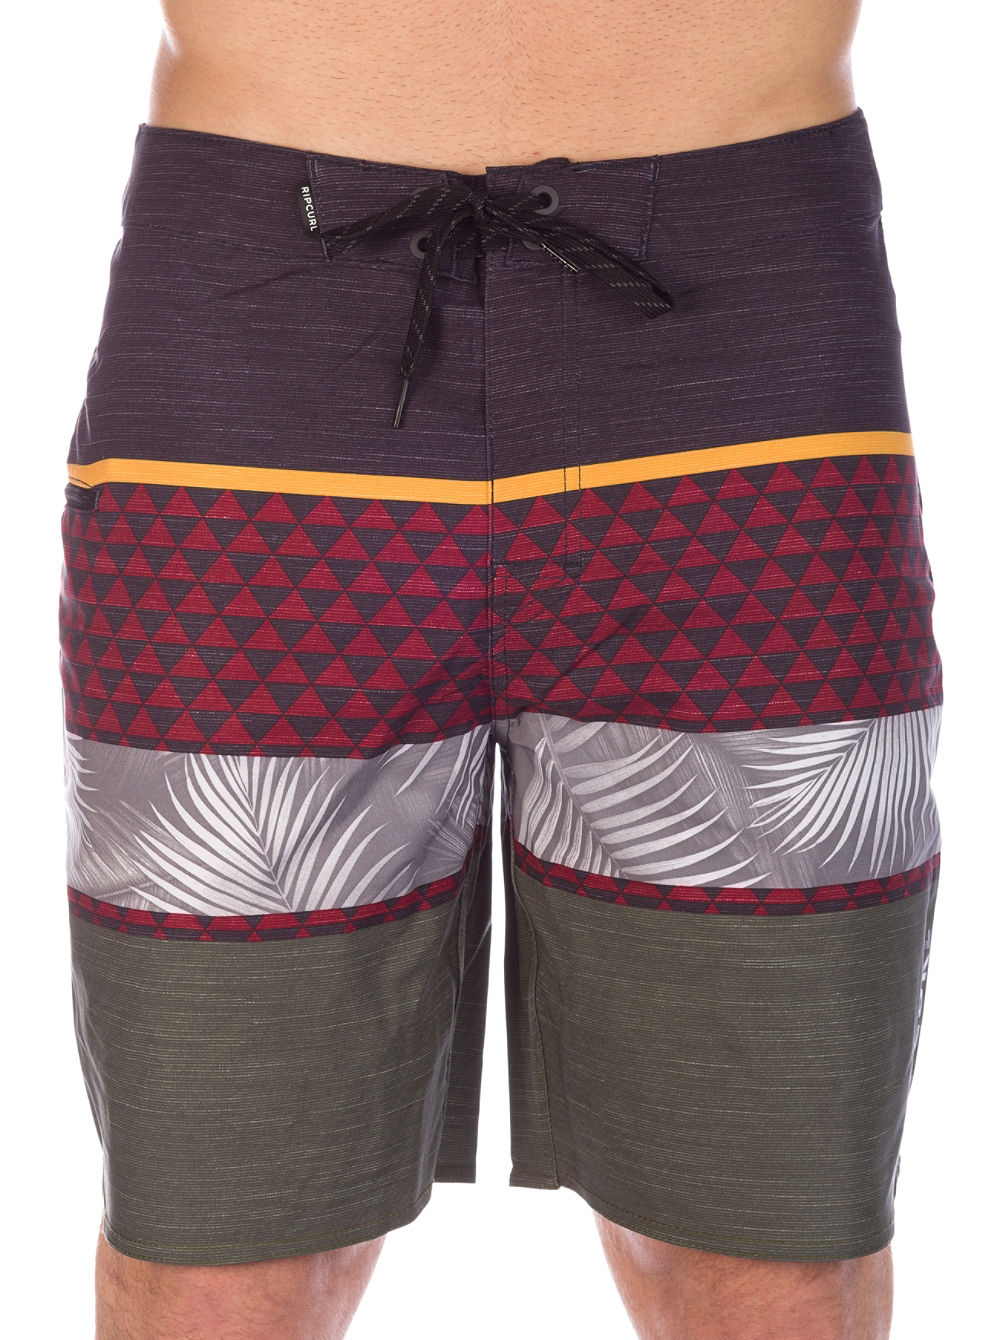 "Mirage Sultans 19"" Boardshorts"